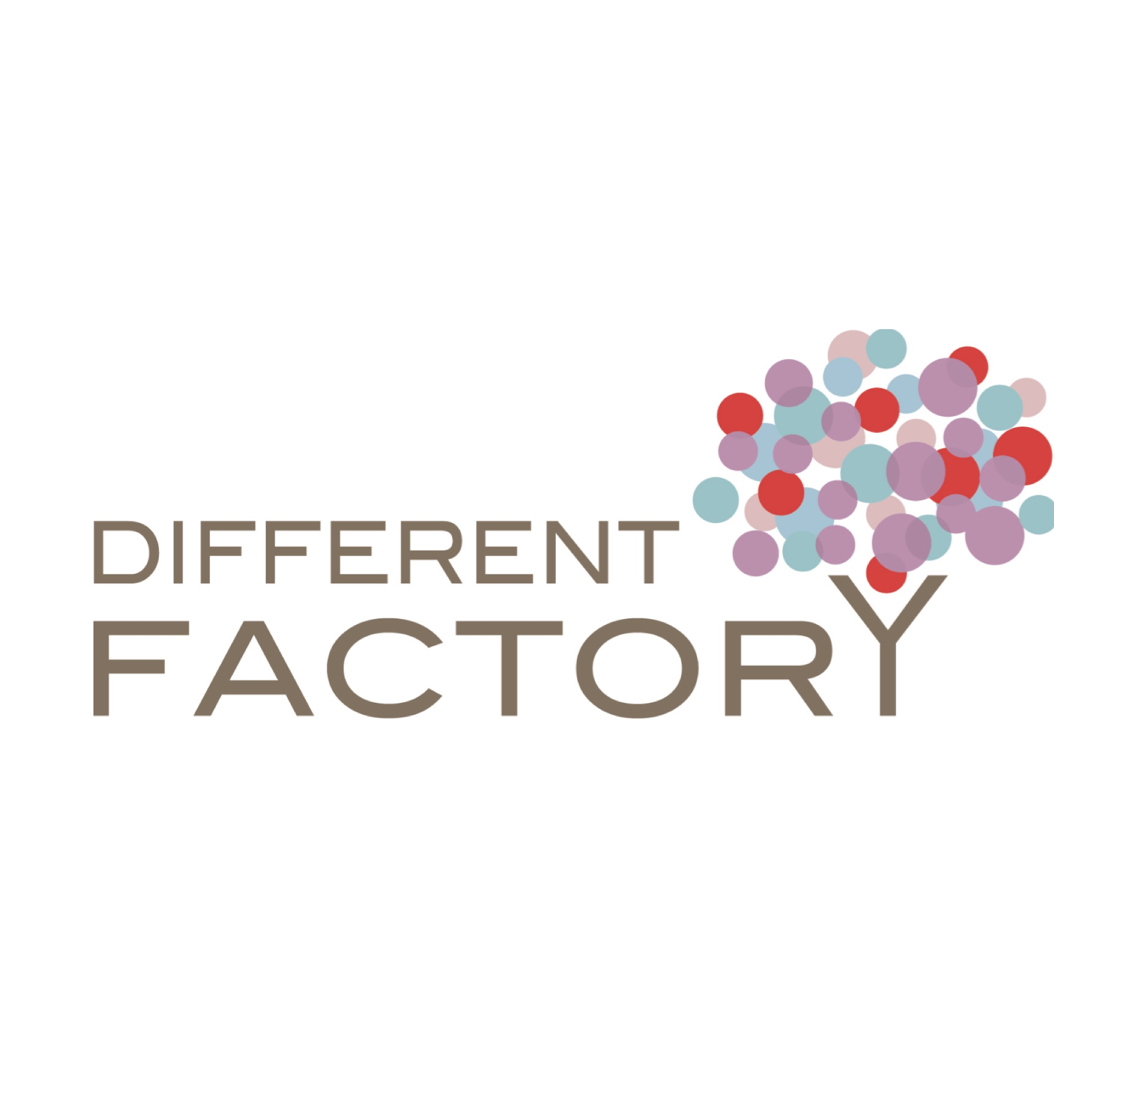 Different FactorY